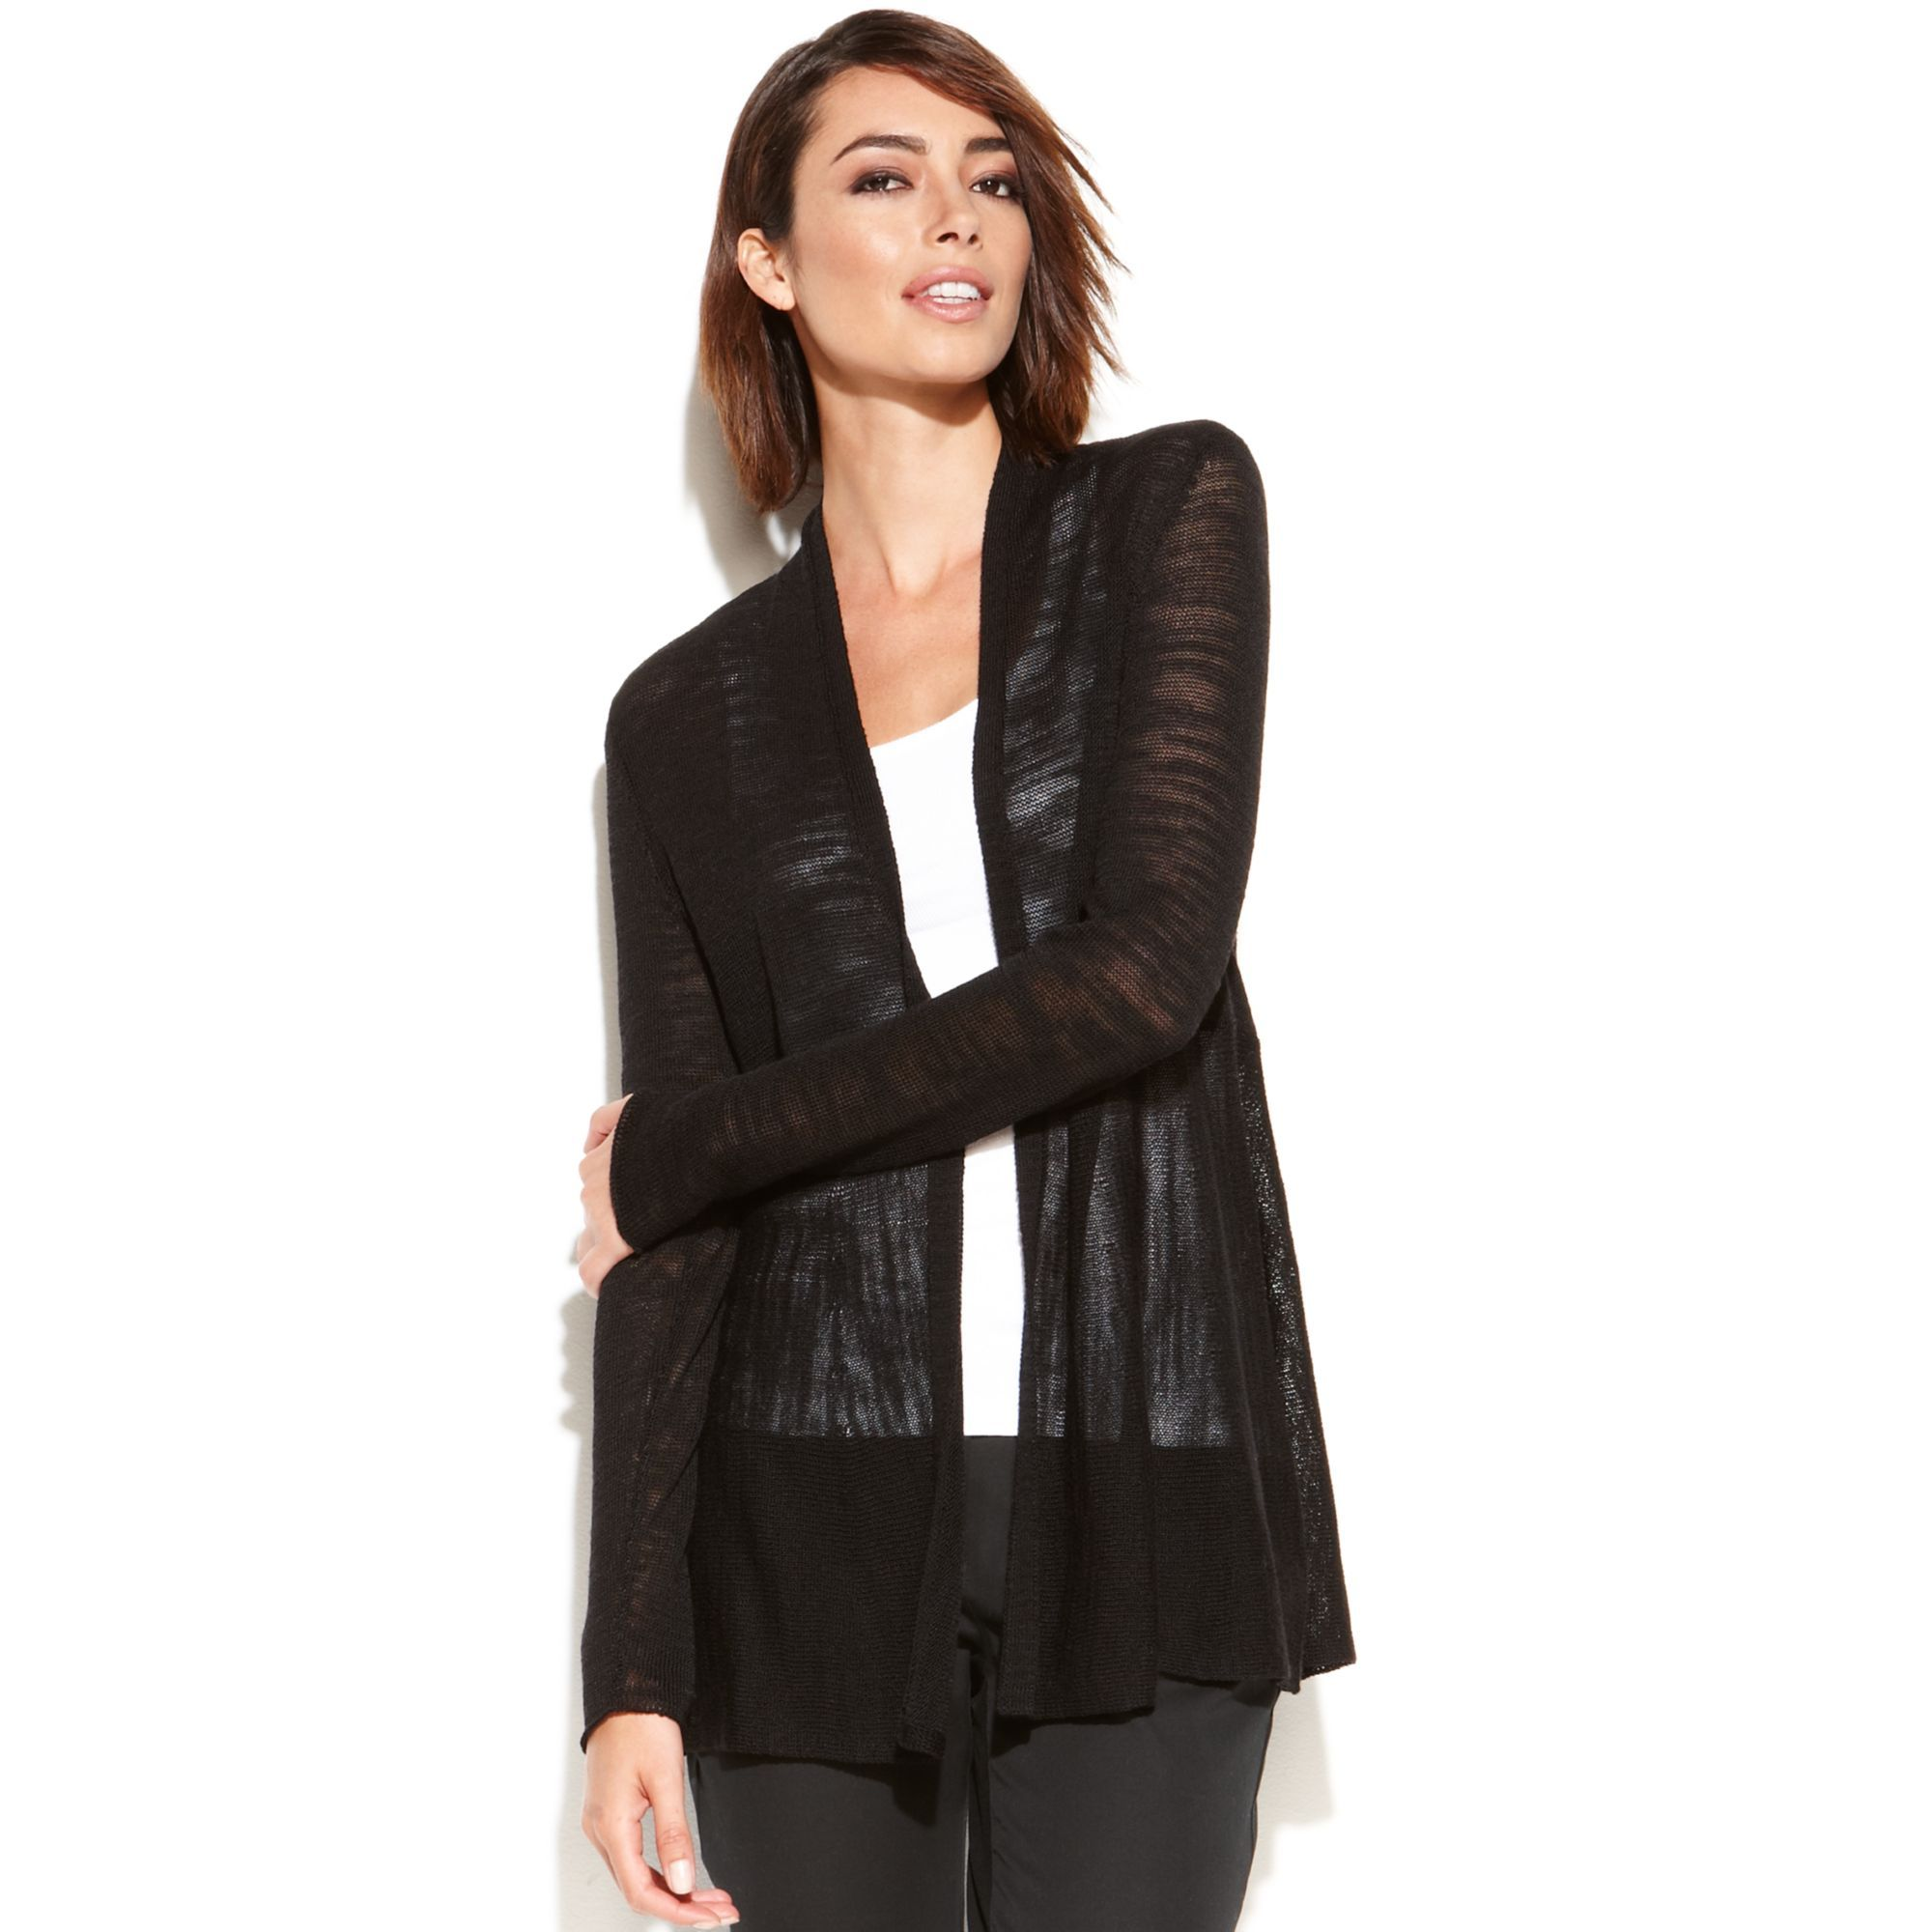 Women's Black Longsleeve Sheer Openfront Cardigan | Eileen fisher ...